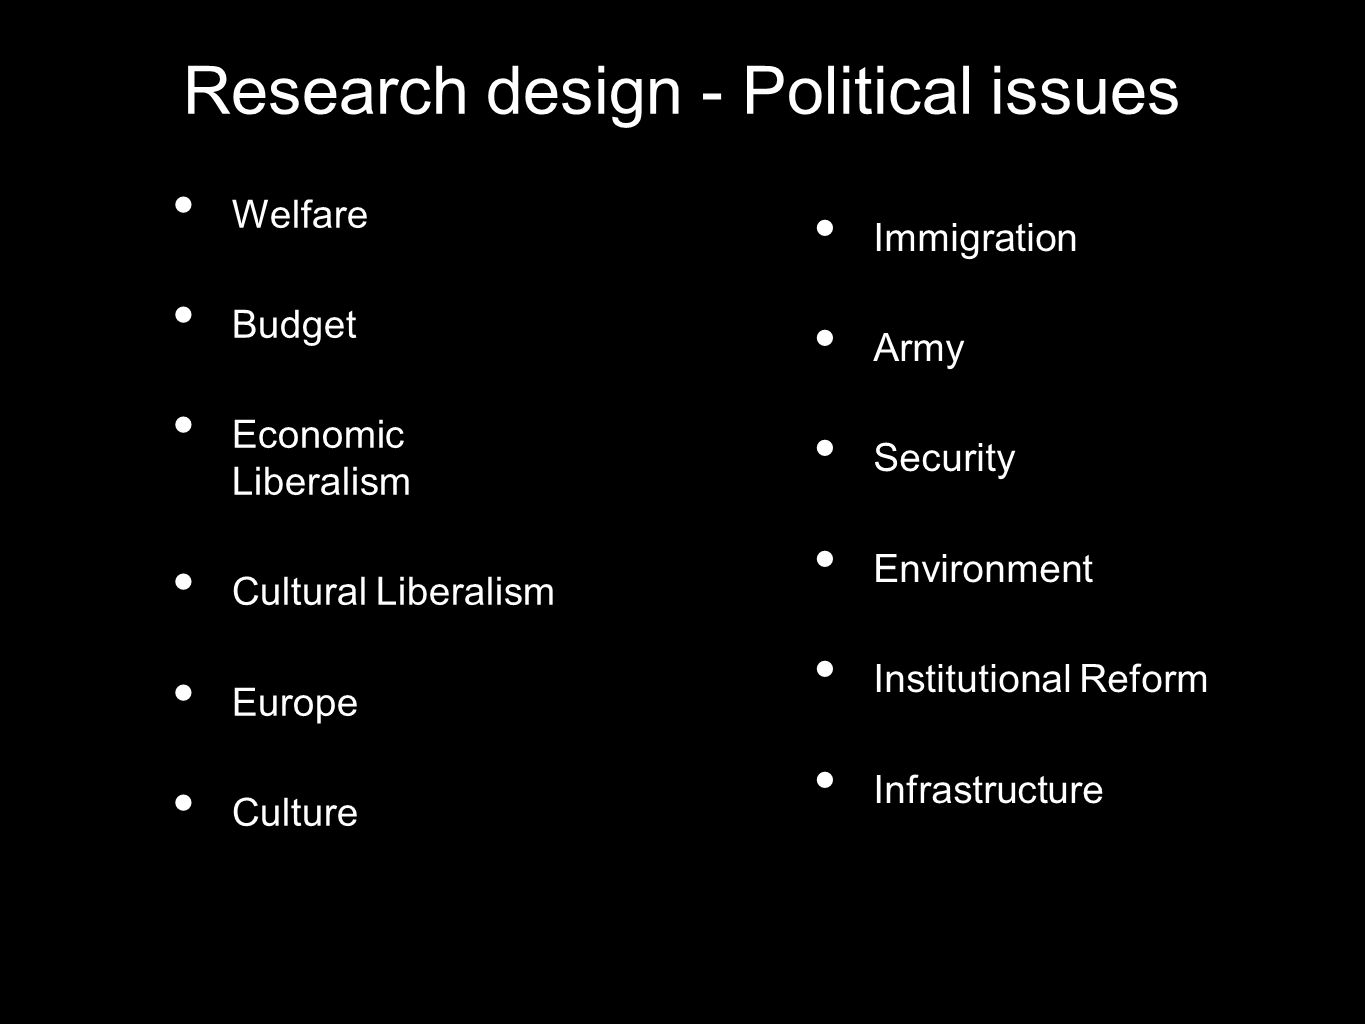 Research design - Political issues